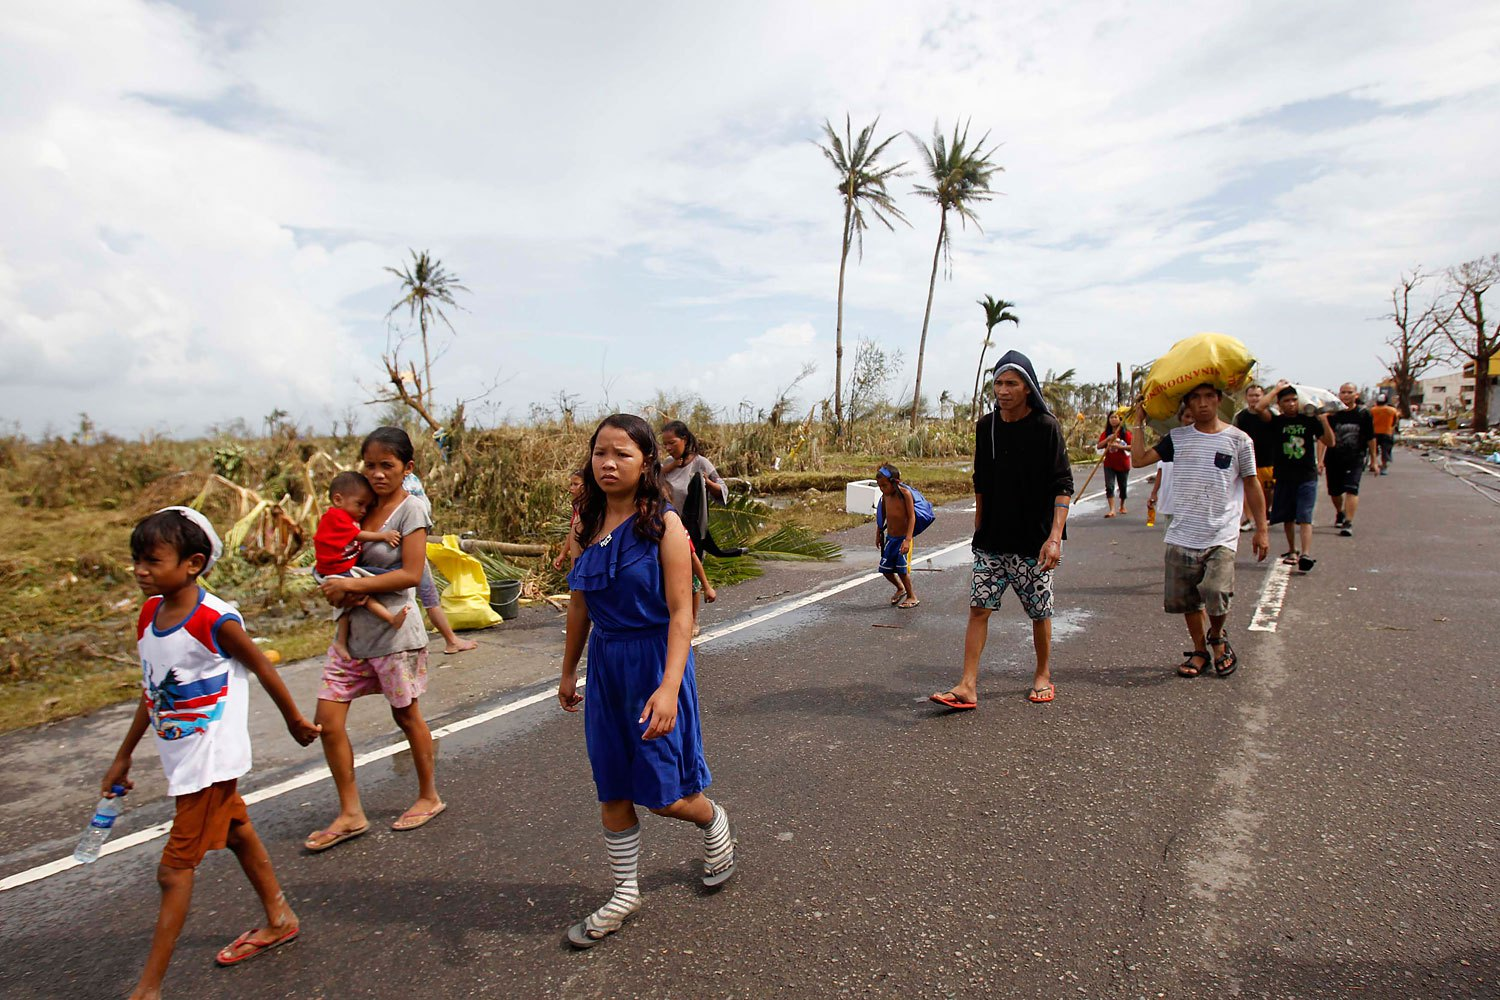 Survivors walk past a damaged town on Nov. 9, 2013, after strong winds brought by Supertyphoon Haiyan battered Tacloban, in central Philippines